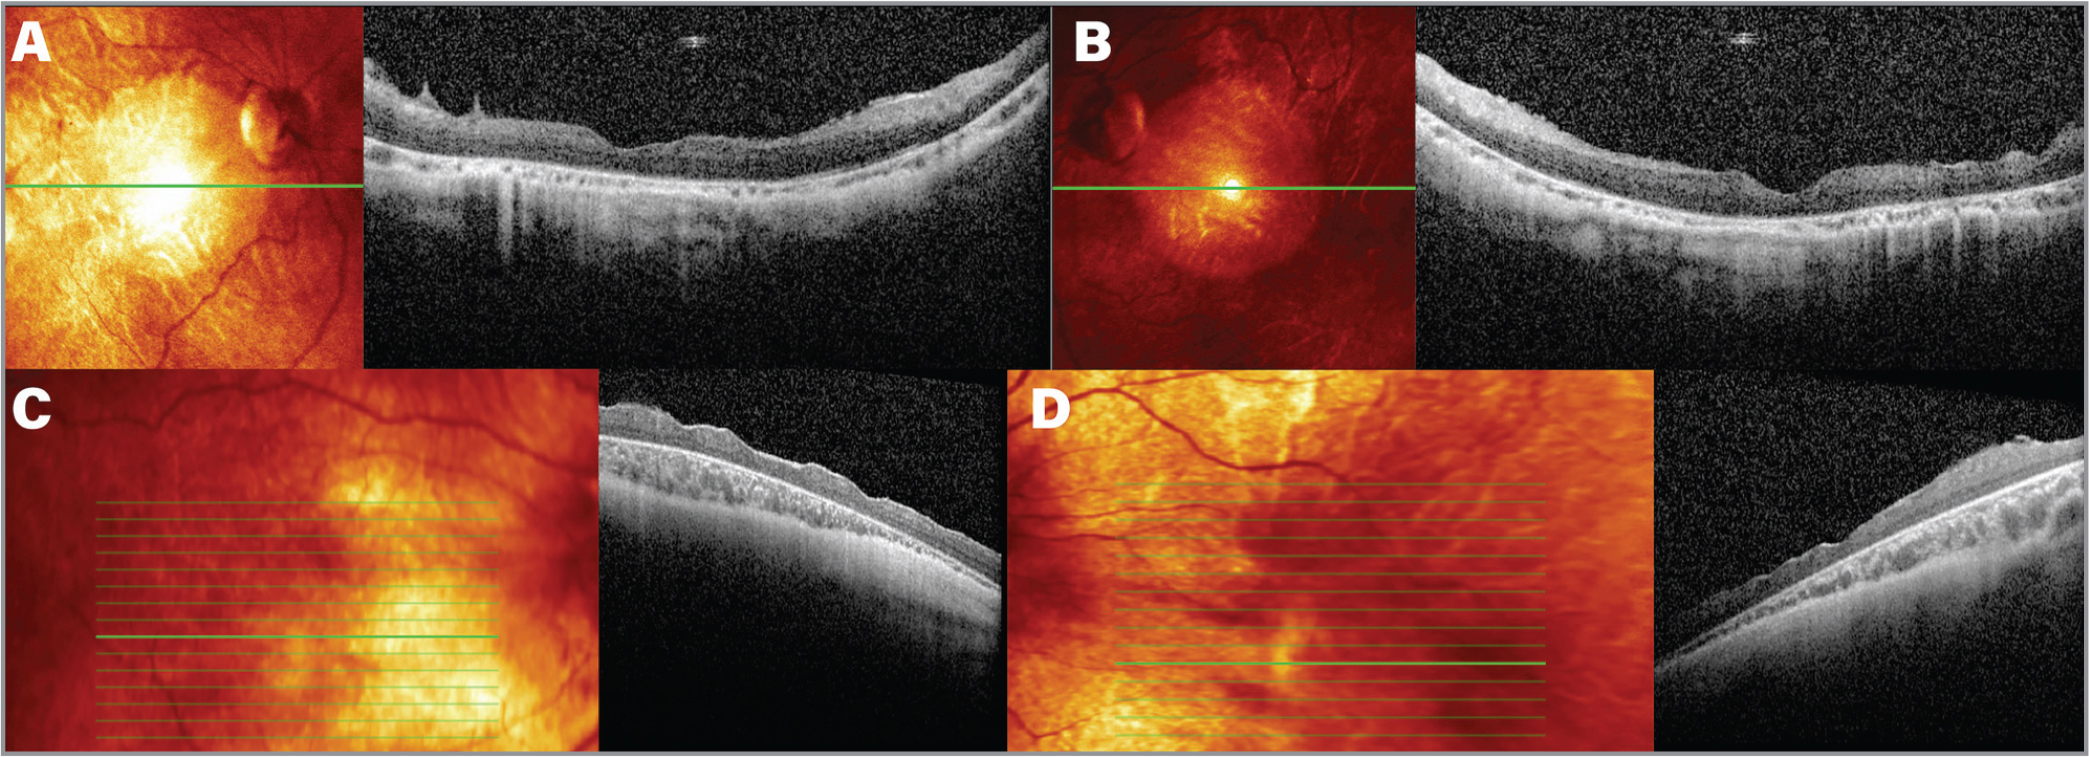 Spectral-domain optical coherence tomography (SD-OCT) of both eyes in two patients with Pierson syndrome (Patients 2 and 4). (A, B) SD-OCT foveal cuts in Patient 2 showing diffuse retinal thinning, poor retinal layers lamination, rudimentary foveal pits, poorly distinguishable photoreceptors, and choroidal thinning in both eyes. (C, D) SD-OCT foveal cuts in Patient 4 showing diffuse retinal thinning, poor retinal layers lamination, rudimentary foveal pits, poorly distinguishable photoreceptors, and progressive decrease in choroidal thickness.